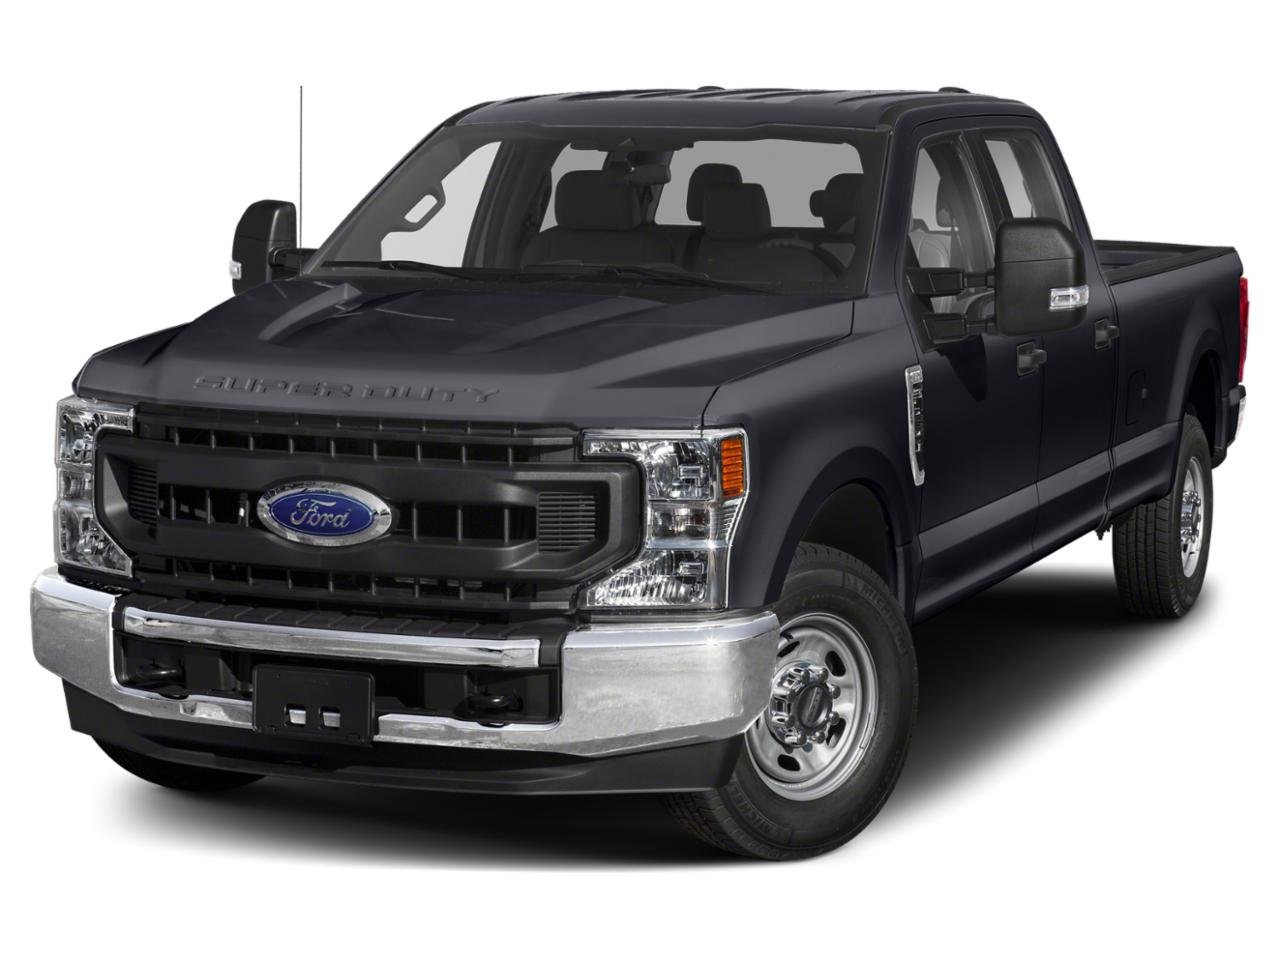 2022 Ford Super Duty F-250 SRW Vehicle Photo in Neenah, WI 54956-3151